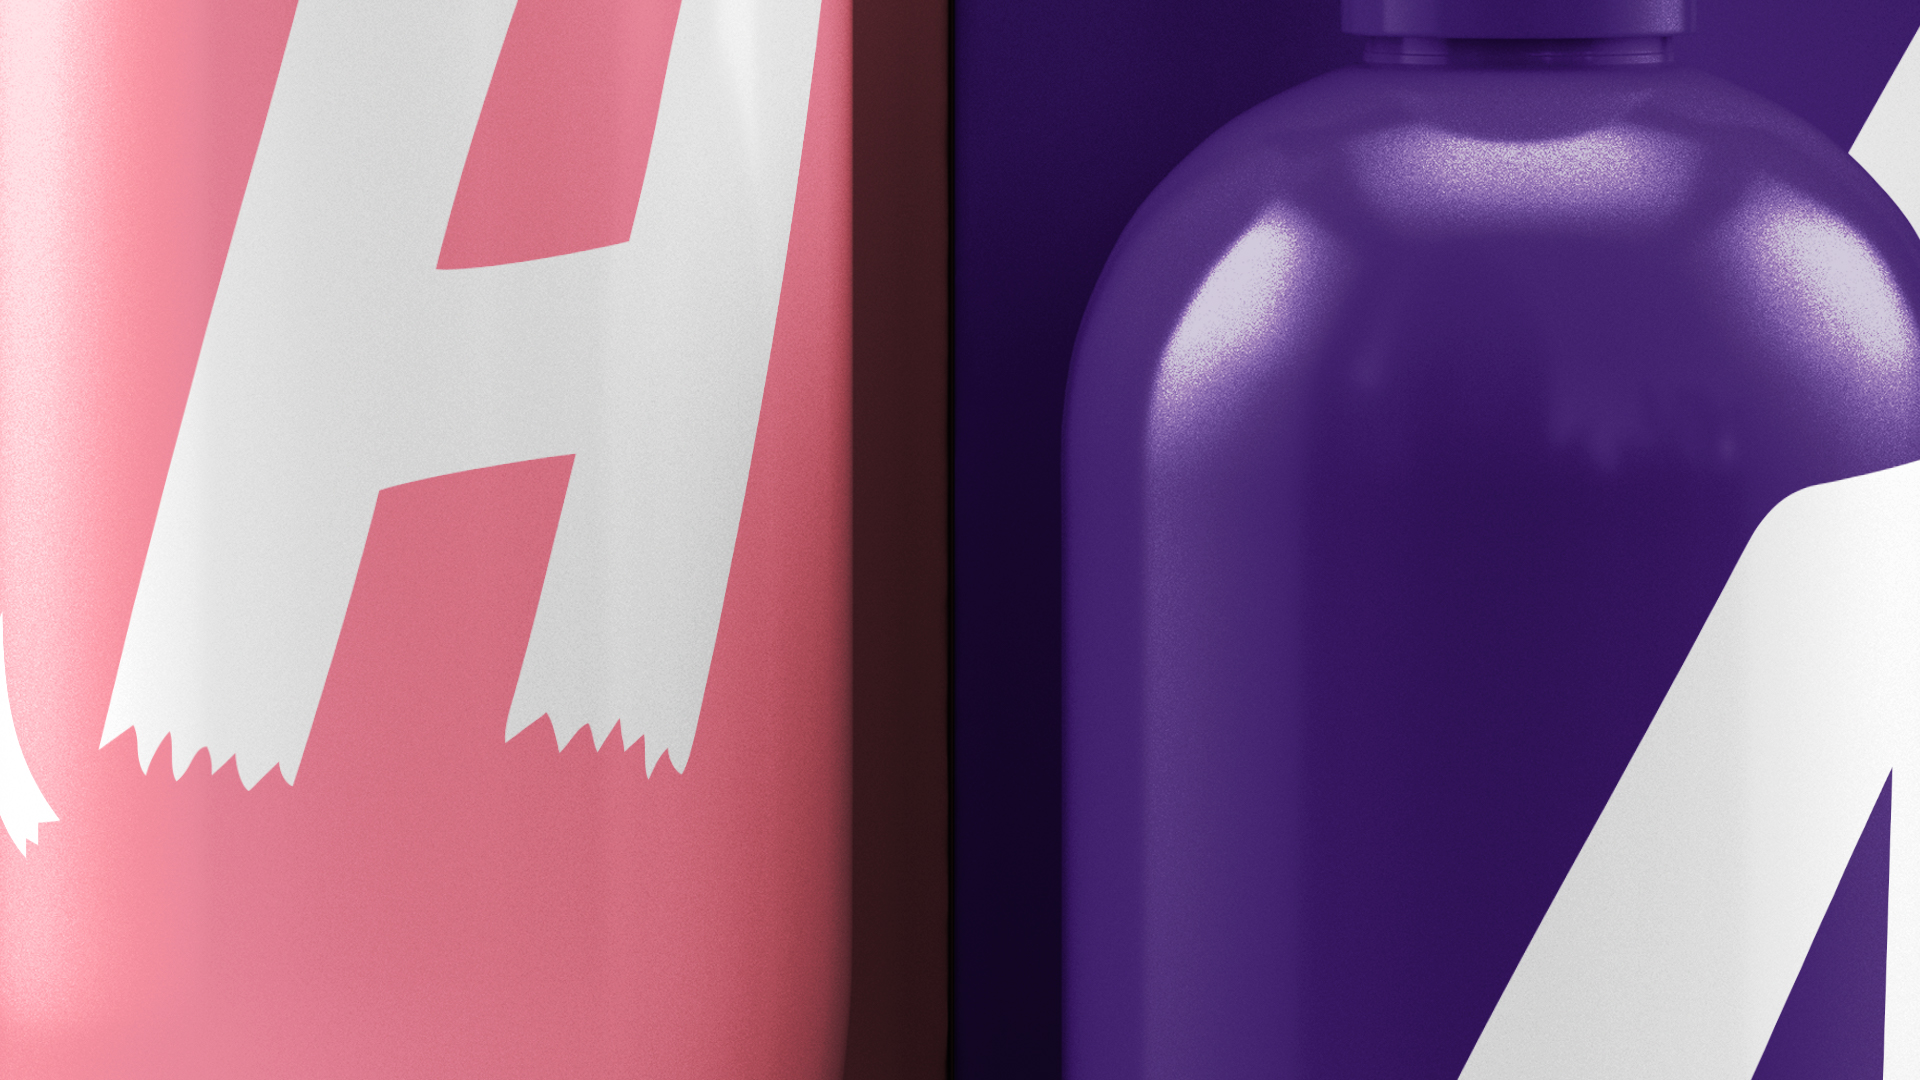 Lotion-Bottle-Packaging-Cosmetics-Set-Mockup